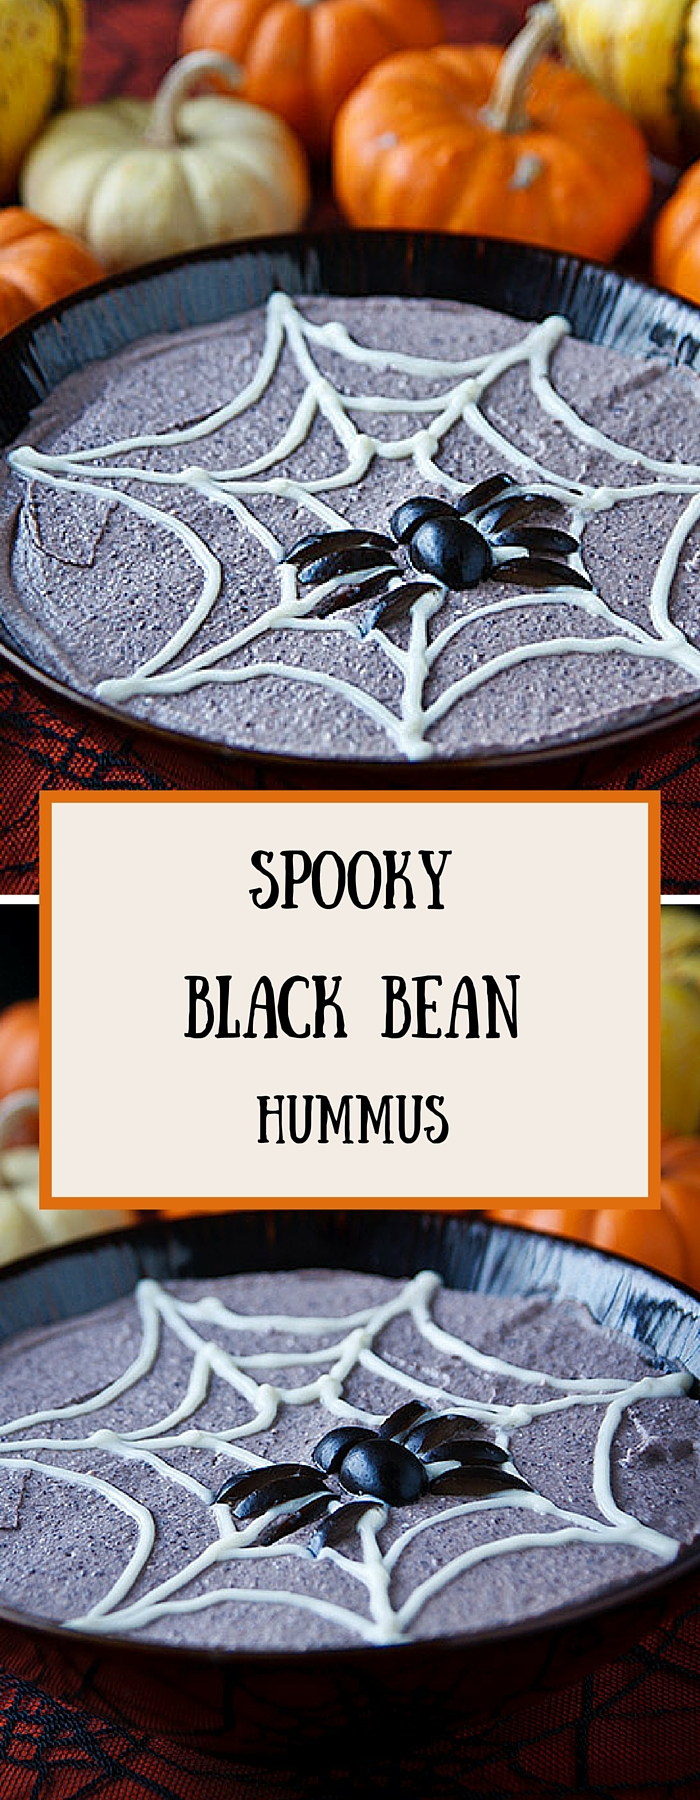 Halloween party foods don't have to be unhealthy! Give your hummus a spooky spin with this low-fat, vegan recipe.